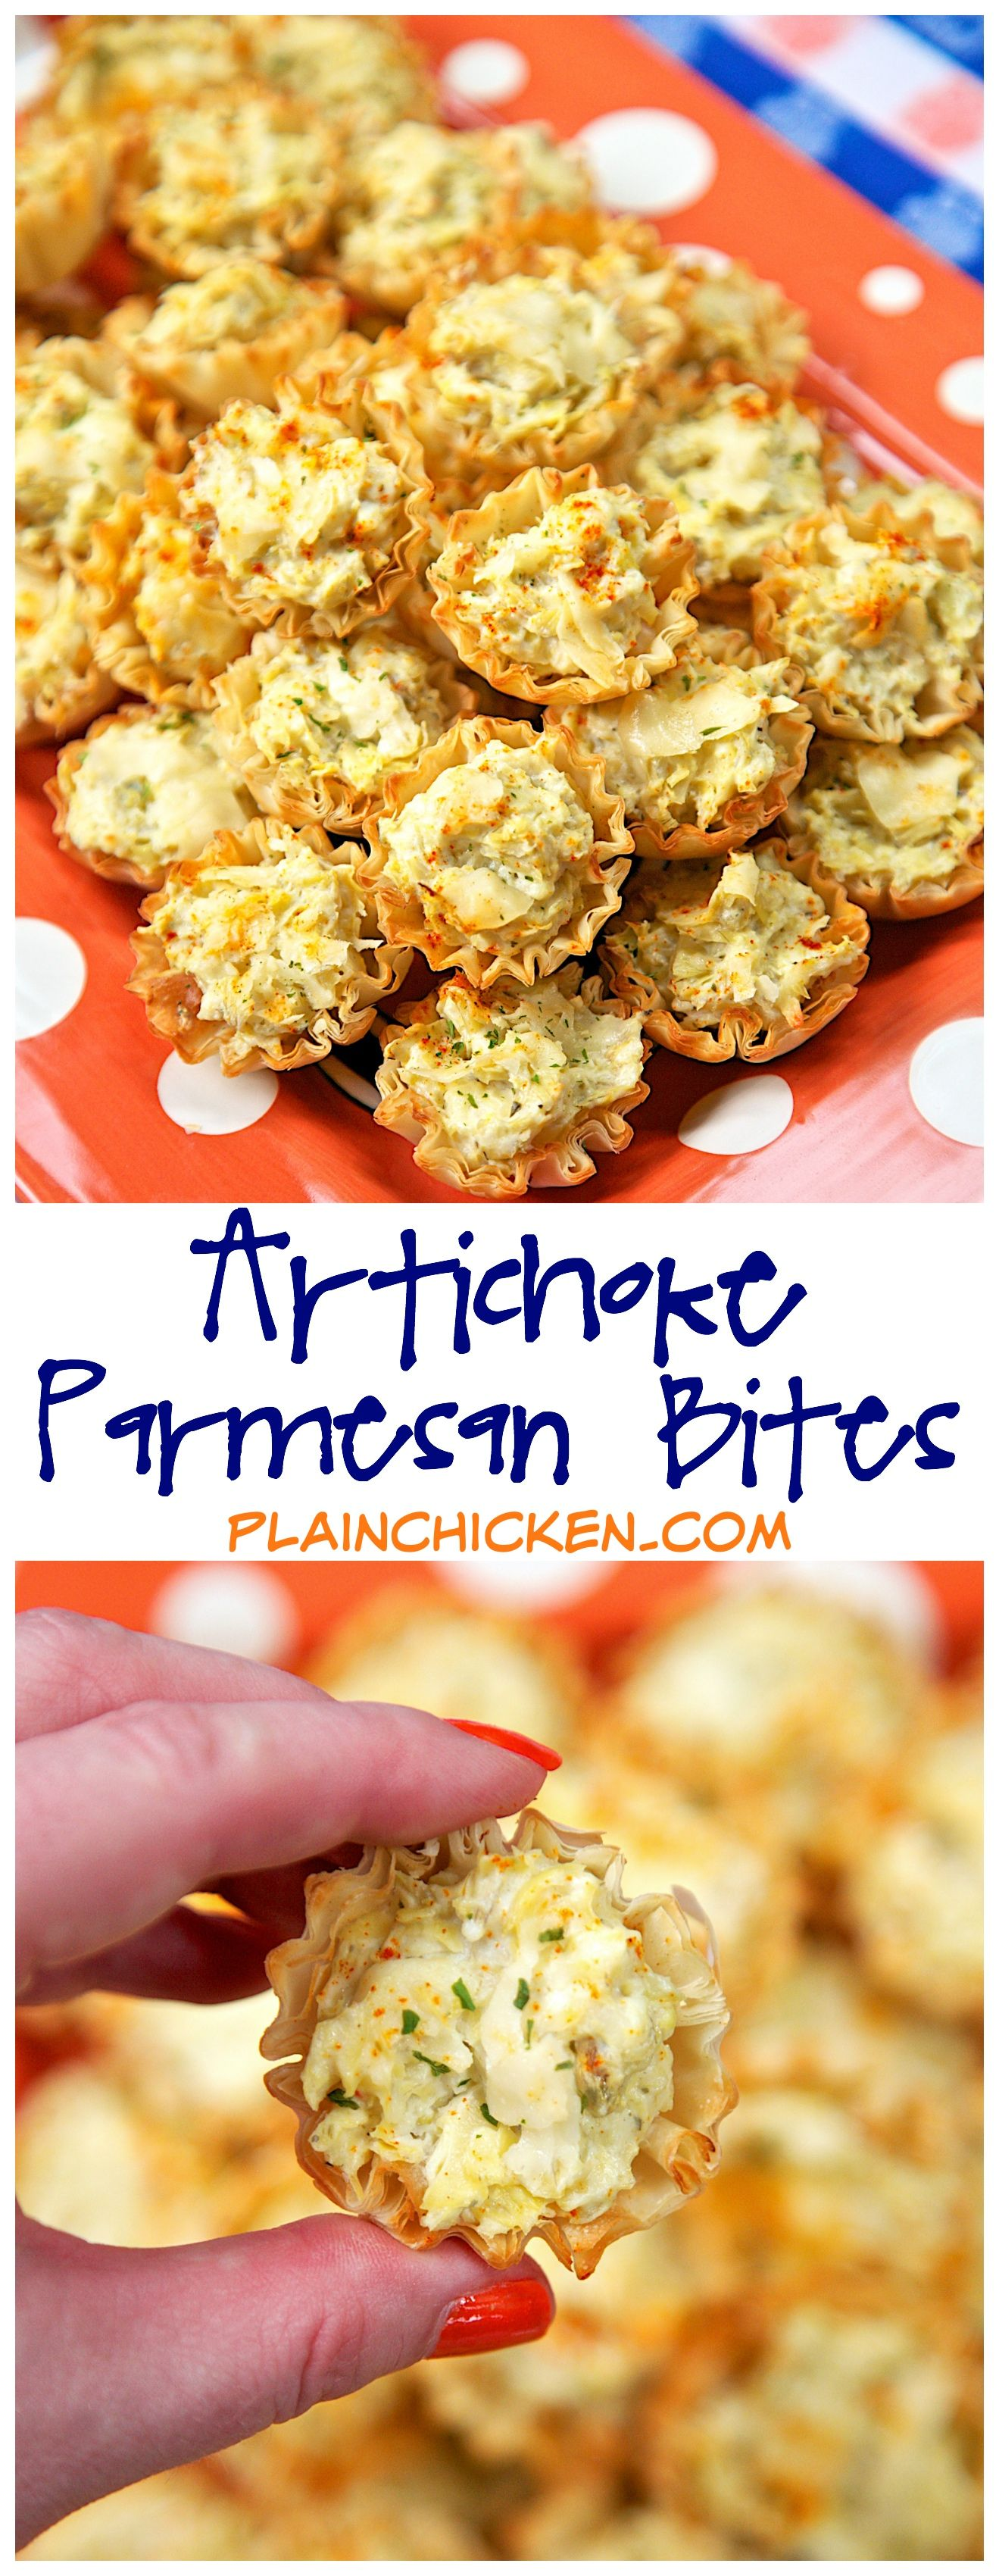 Artichoke Parmesan Bites - only 5 ingredients! Can make ahead of time and refrigerate or freeze for later. Great for parties! We could not stop eating these. YUM! #tailgatefoodmakeahead